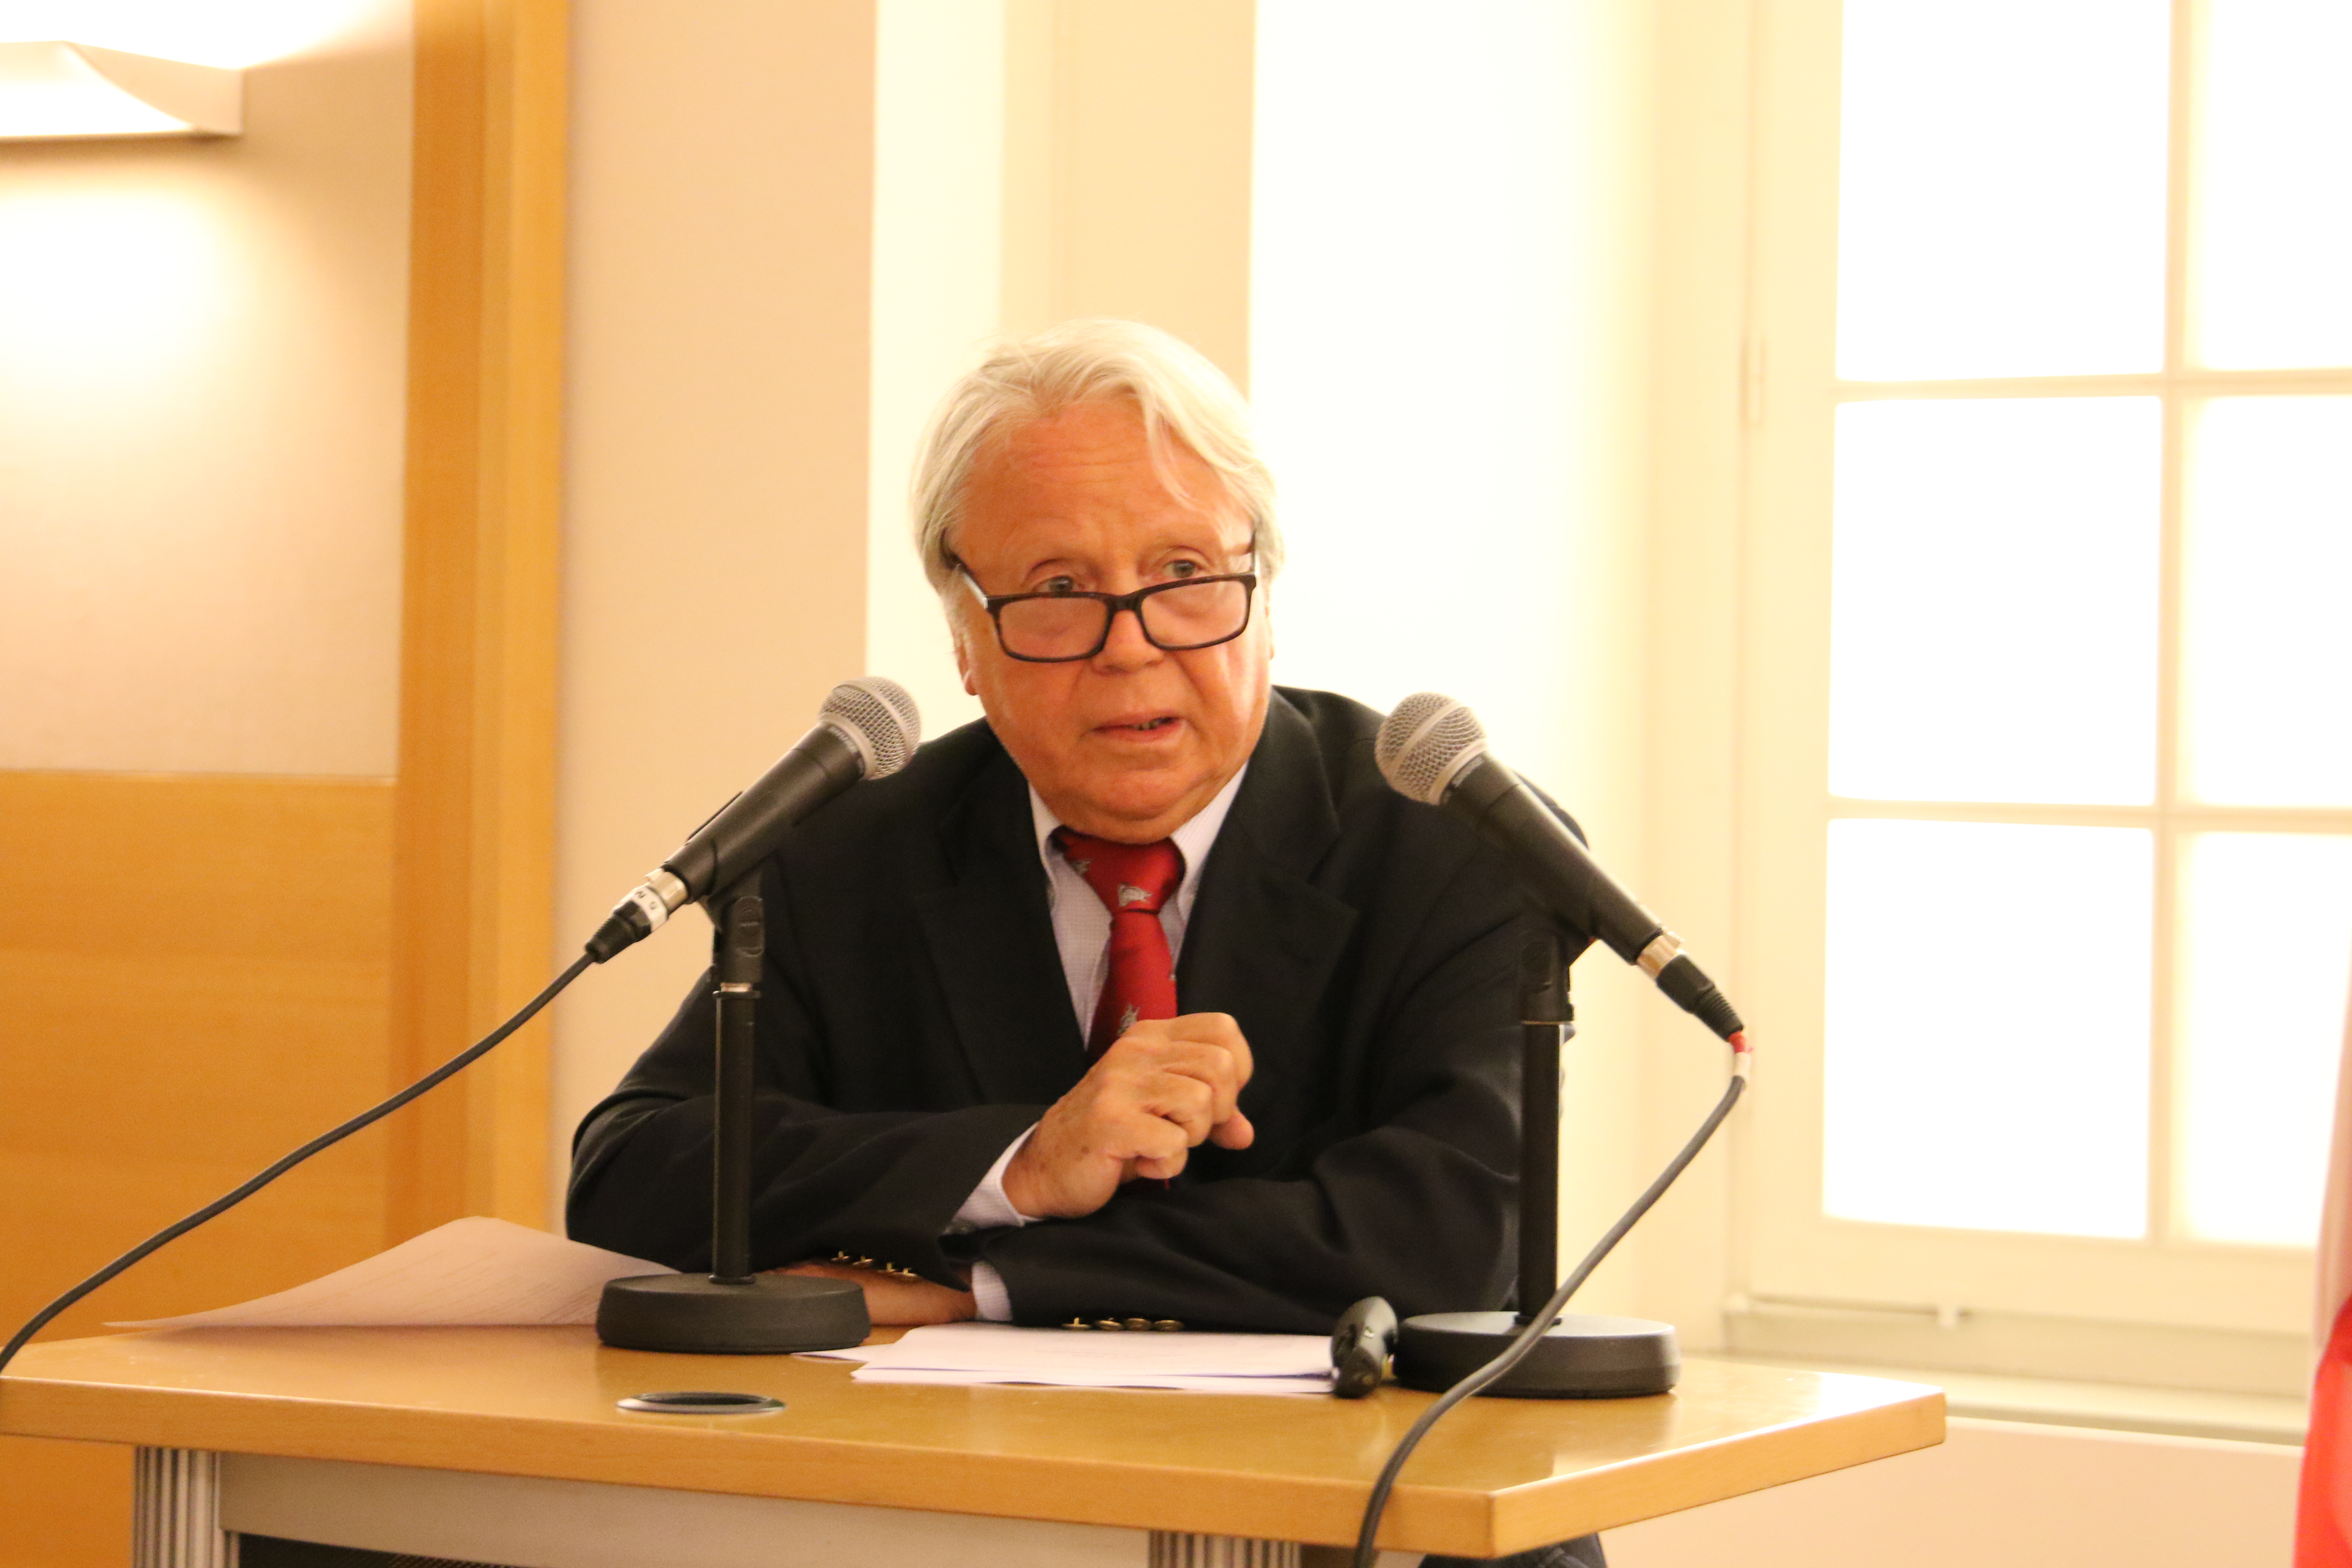 Hans Winkler, Director of the Diplomatic Academy of Vienna